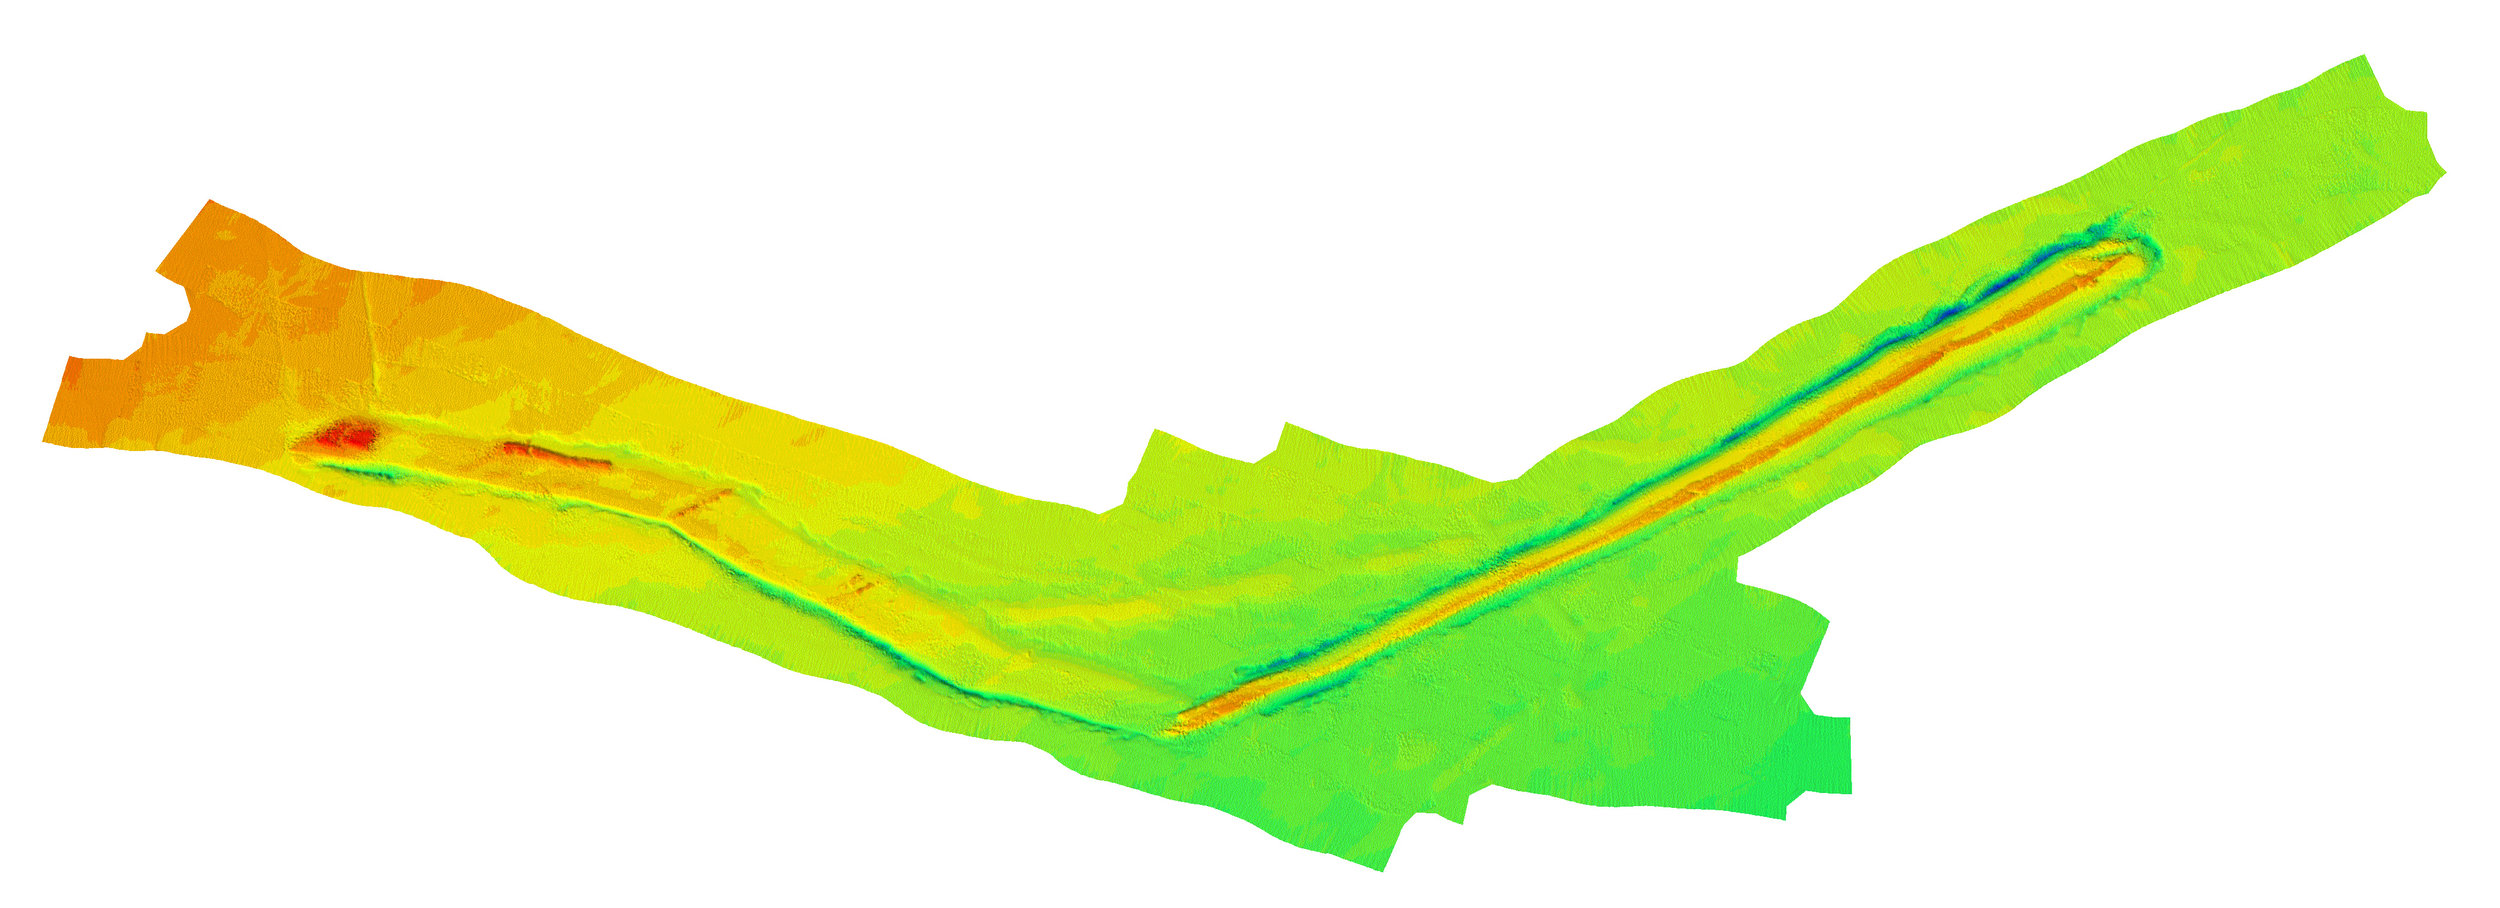 Seabed Bathymetry - Ice Gouge